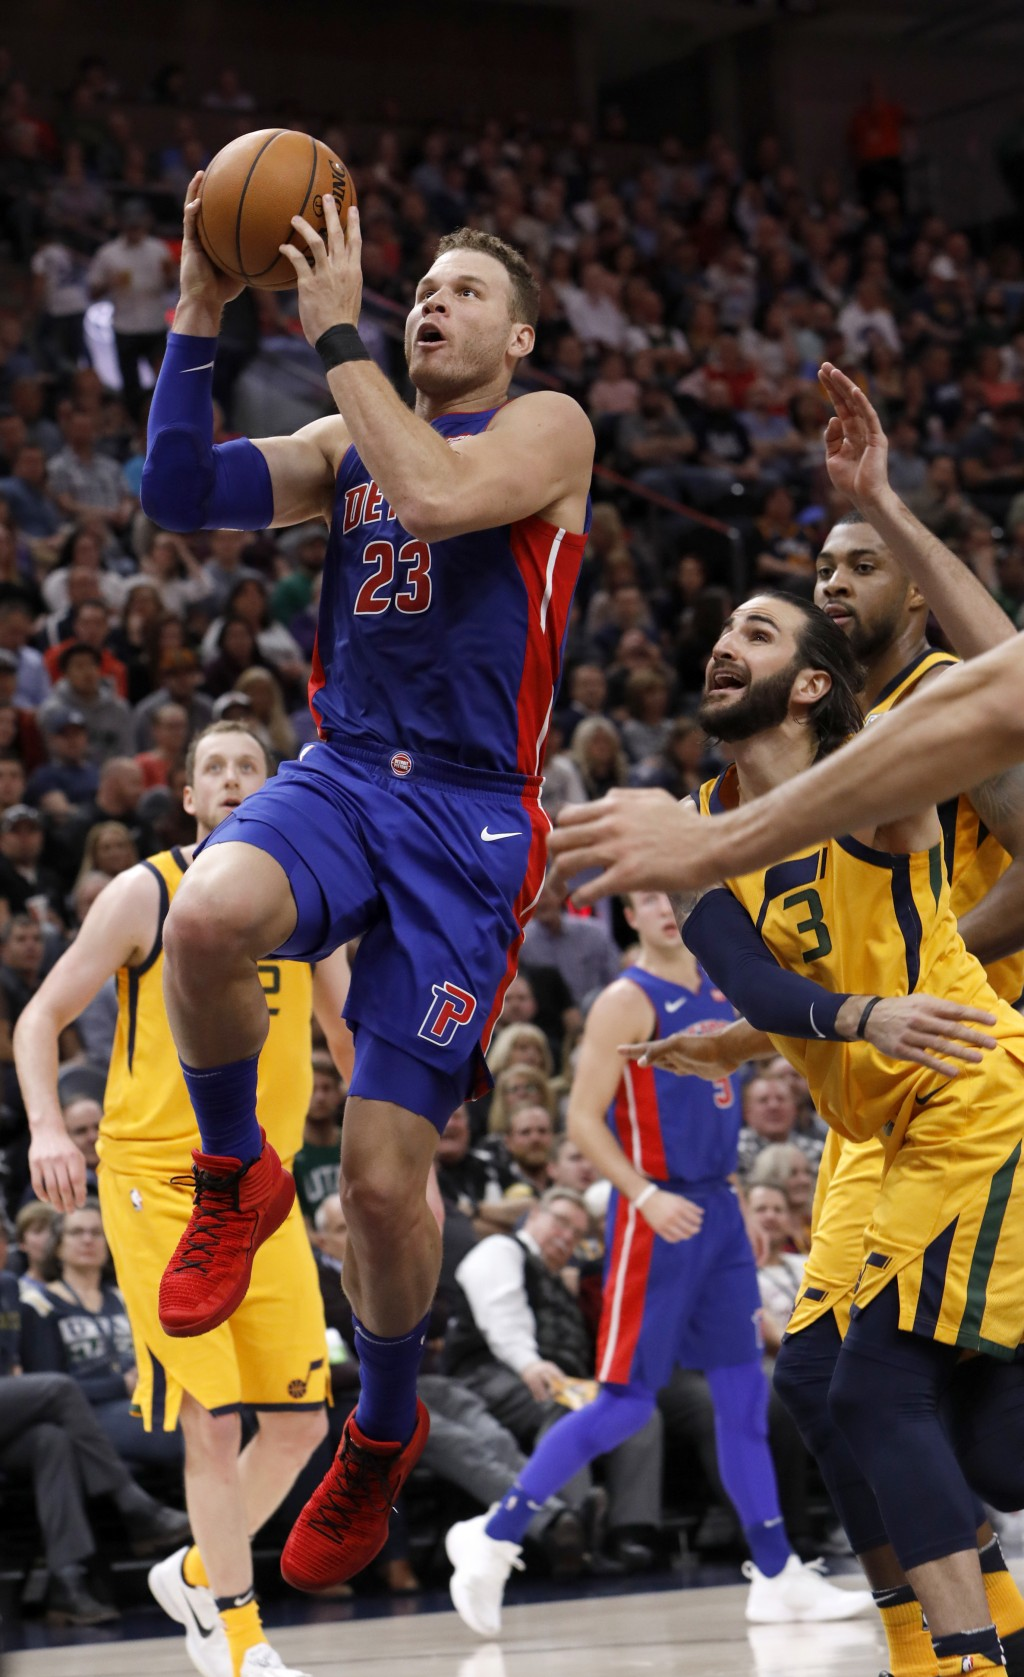 Detroit Pistons' Blake Griffin (23) attempts a layup as Utah Jazz's Ricky Rubio (3) defends in the first half of an NBA basketball game on Tuesday, Ma